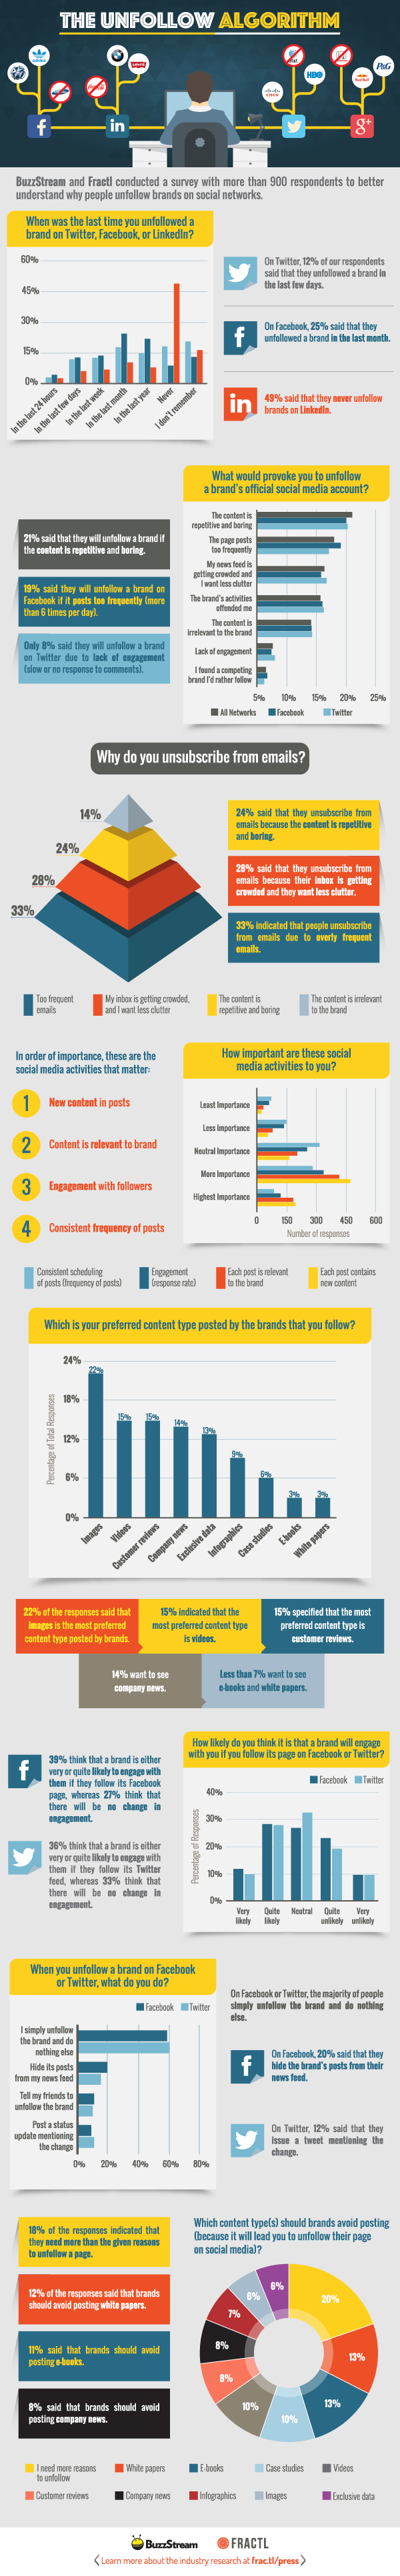 Why People Unfollow Brands on #Social_Media #SMM #Infographic